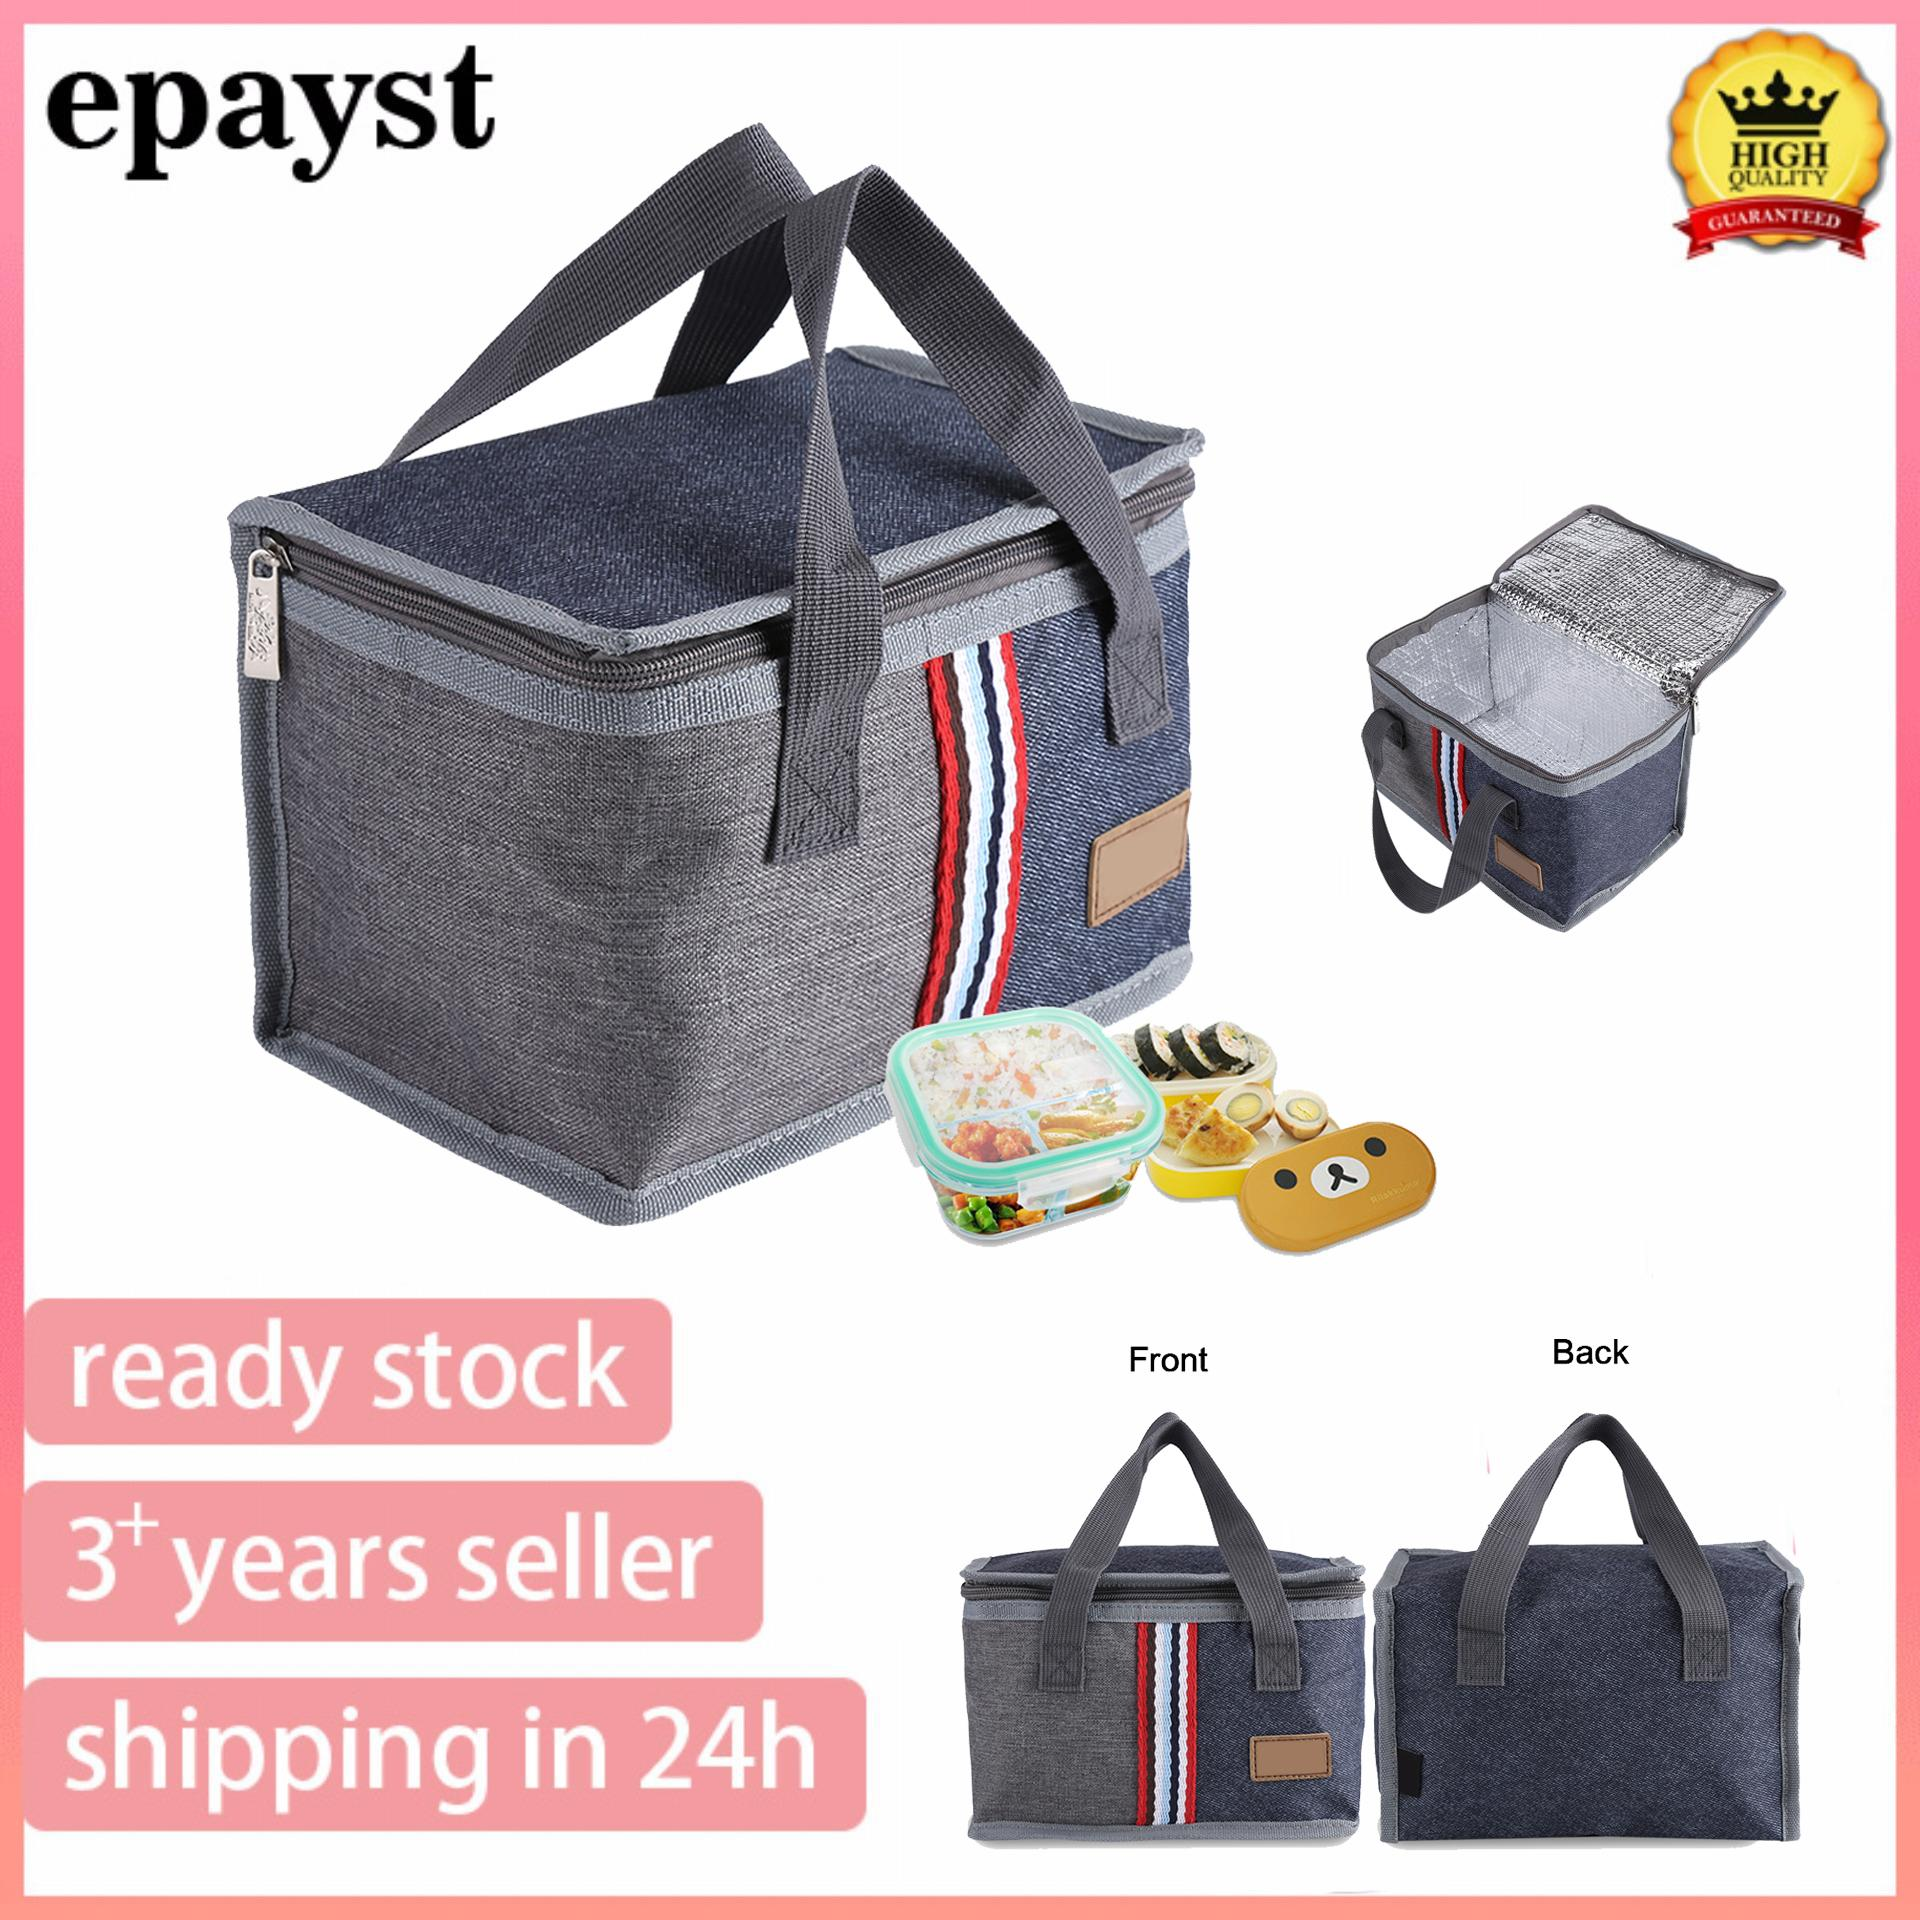 b6c015c3a epayst HOT+Recommended Portable Insulated Thermal Cooler Lunch Storage Food  Box Bag Case